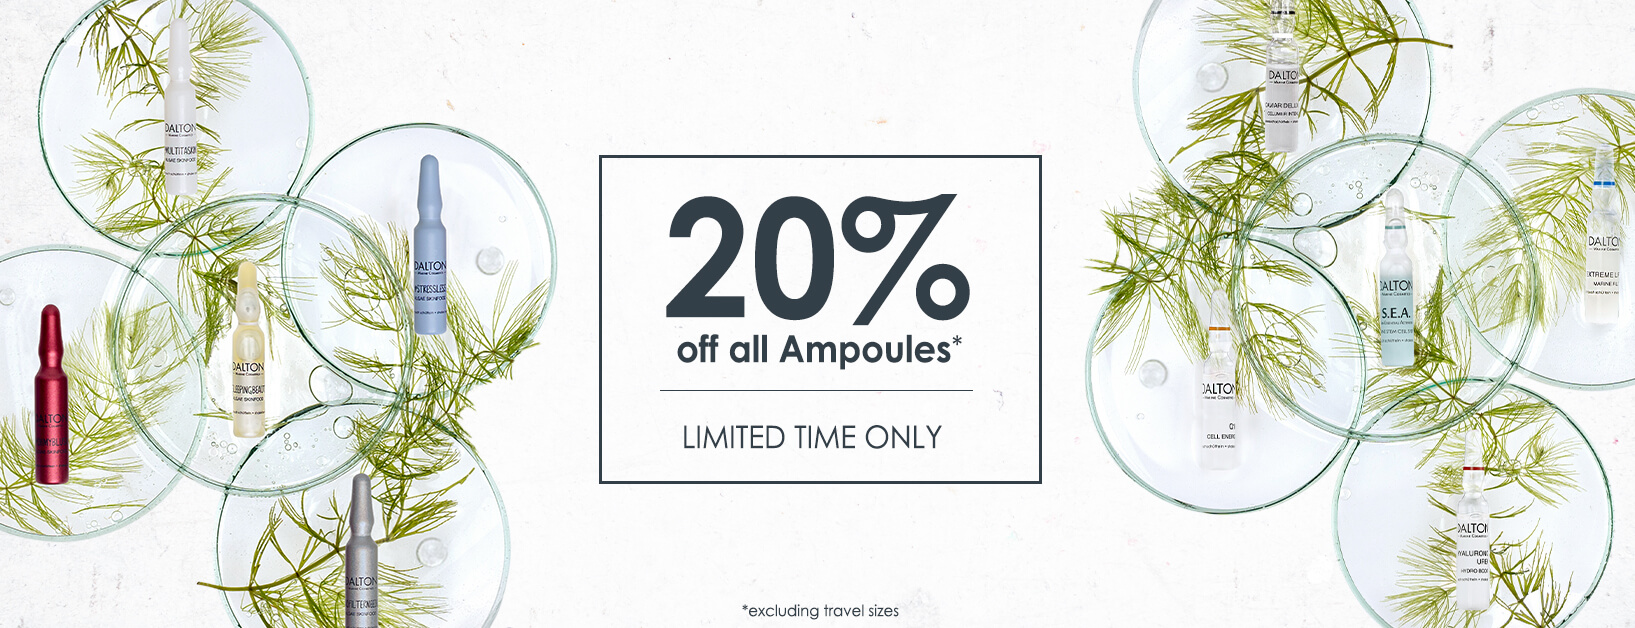 Save 20% on all ampoules